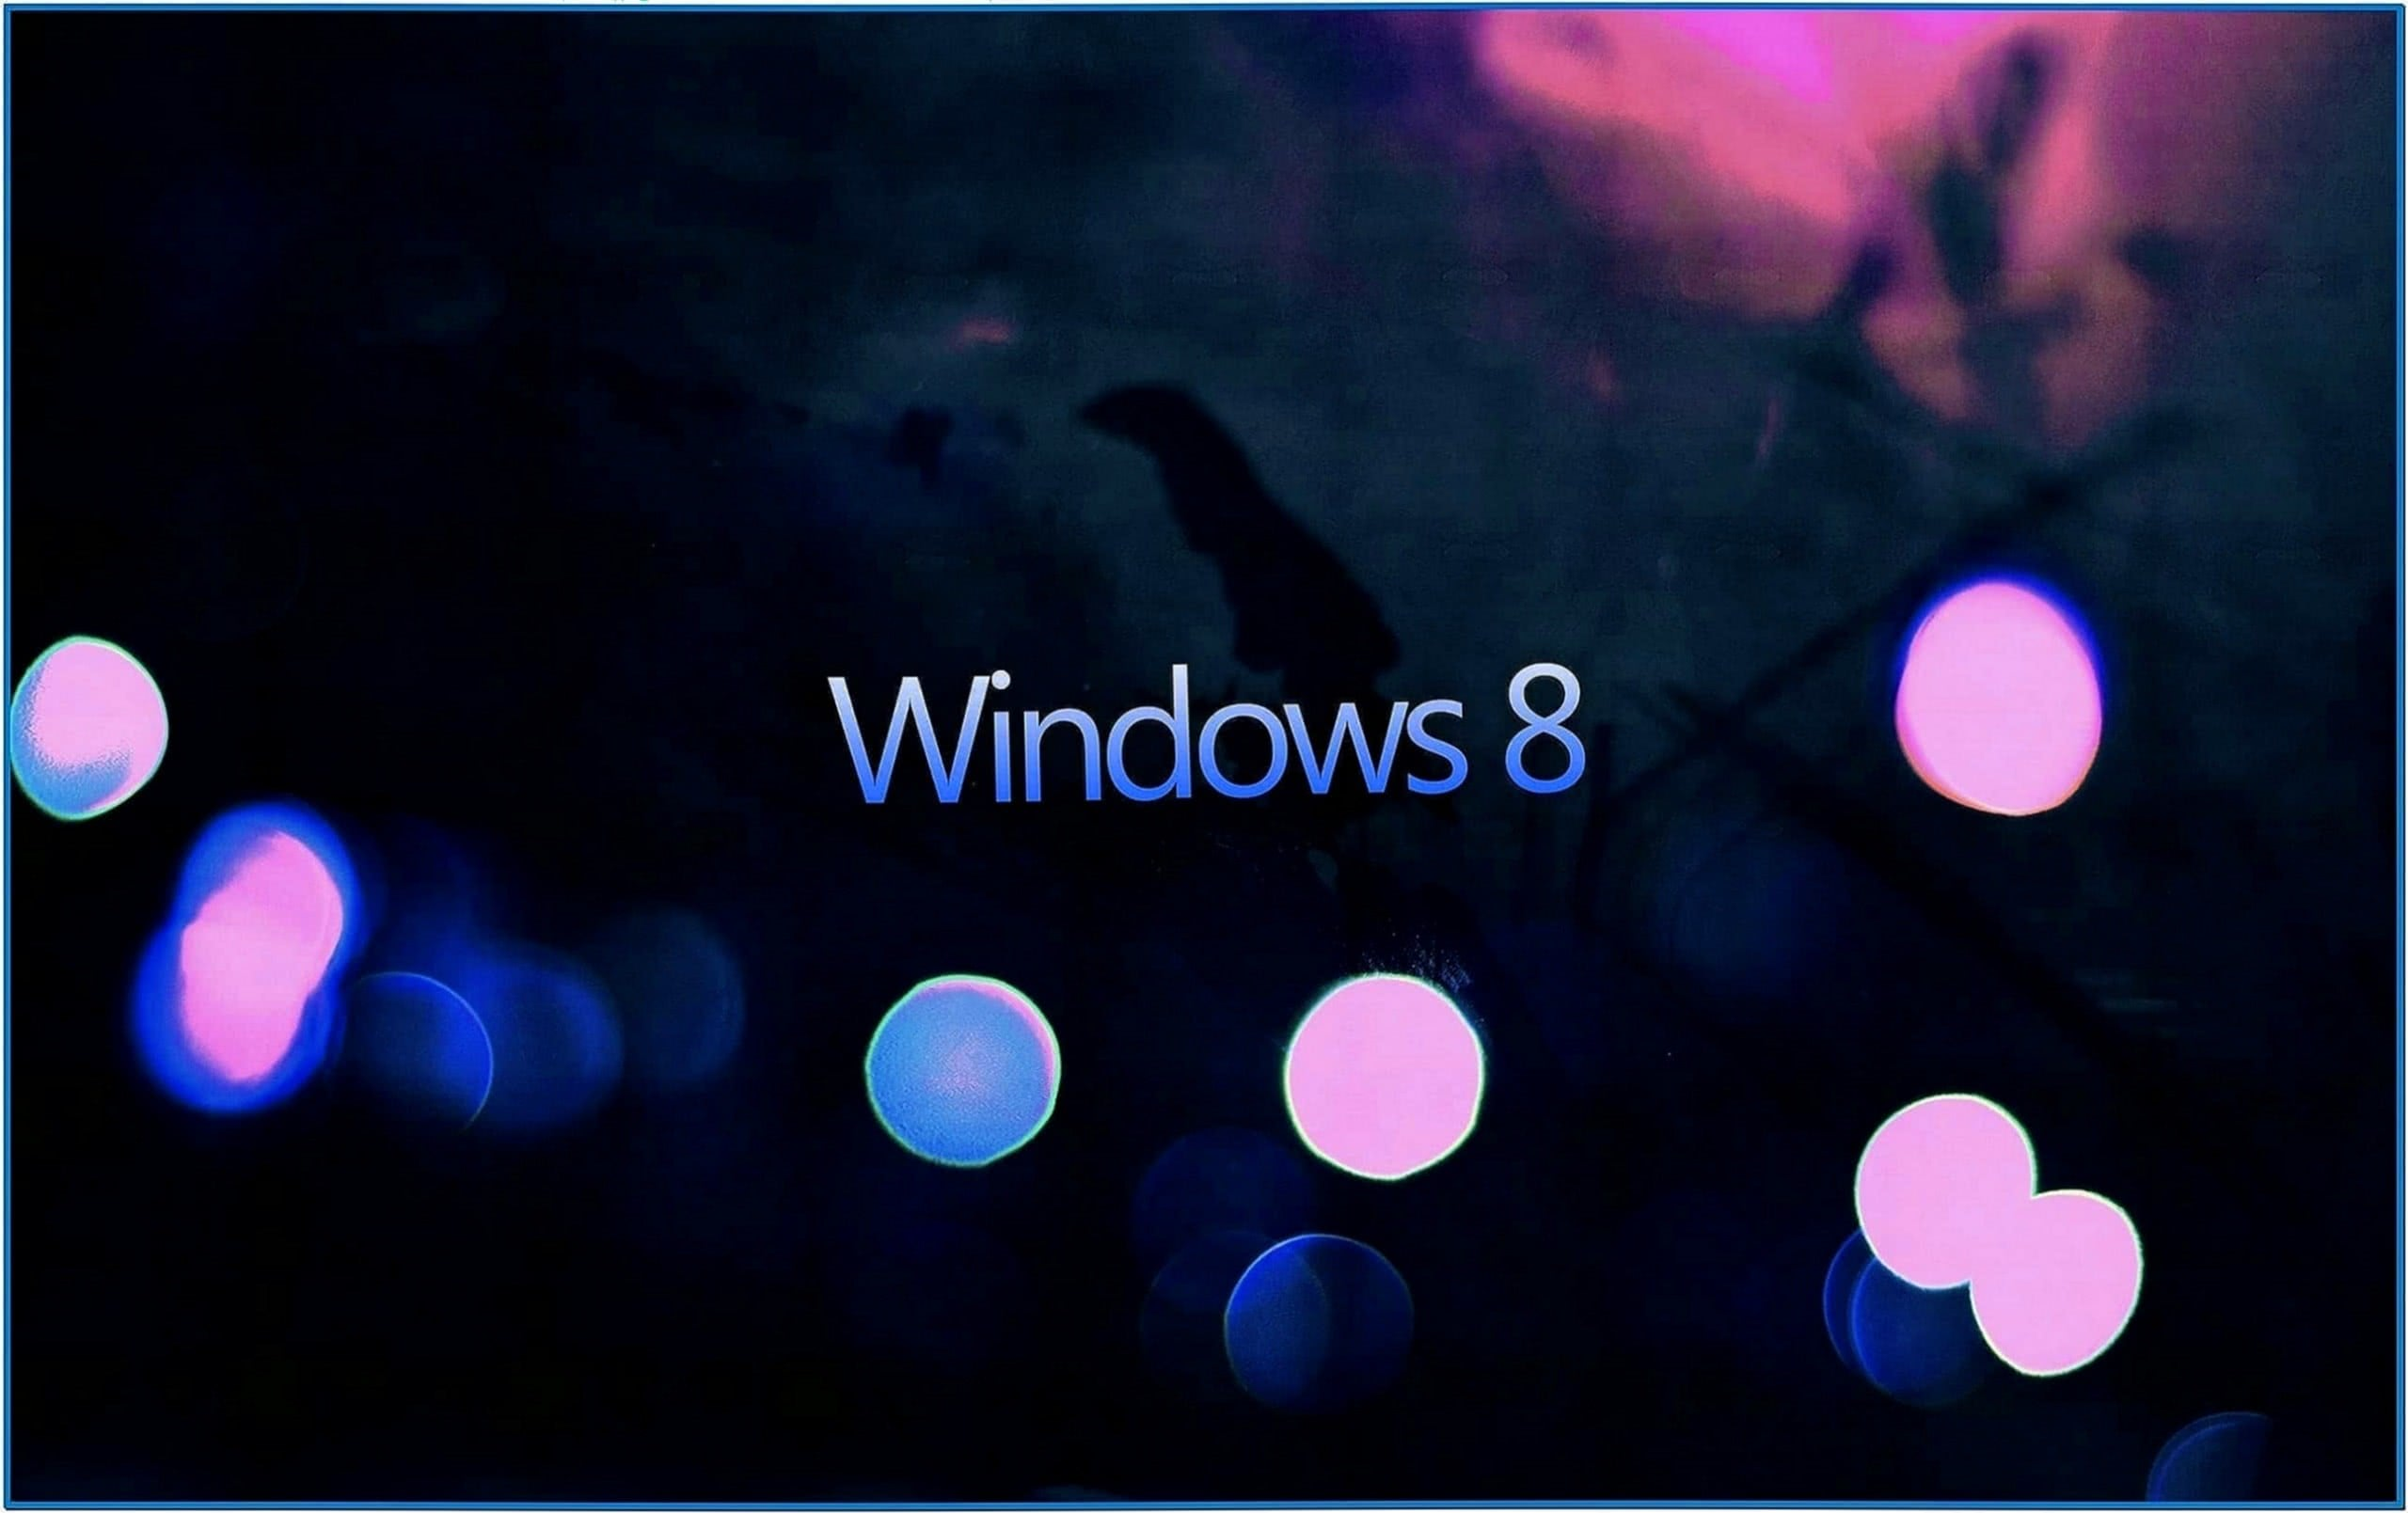 Screensavers Windows 8